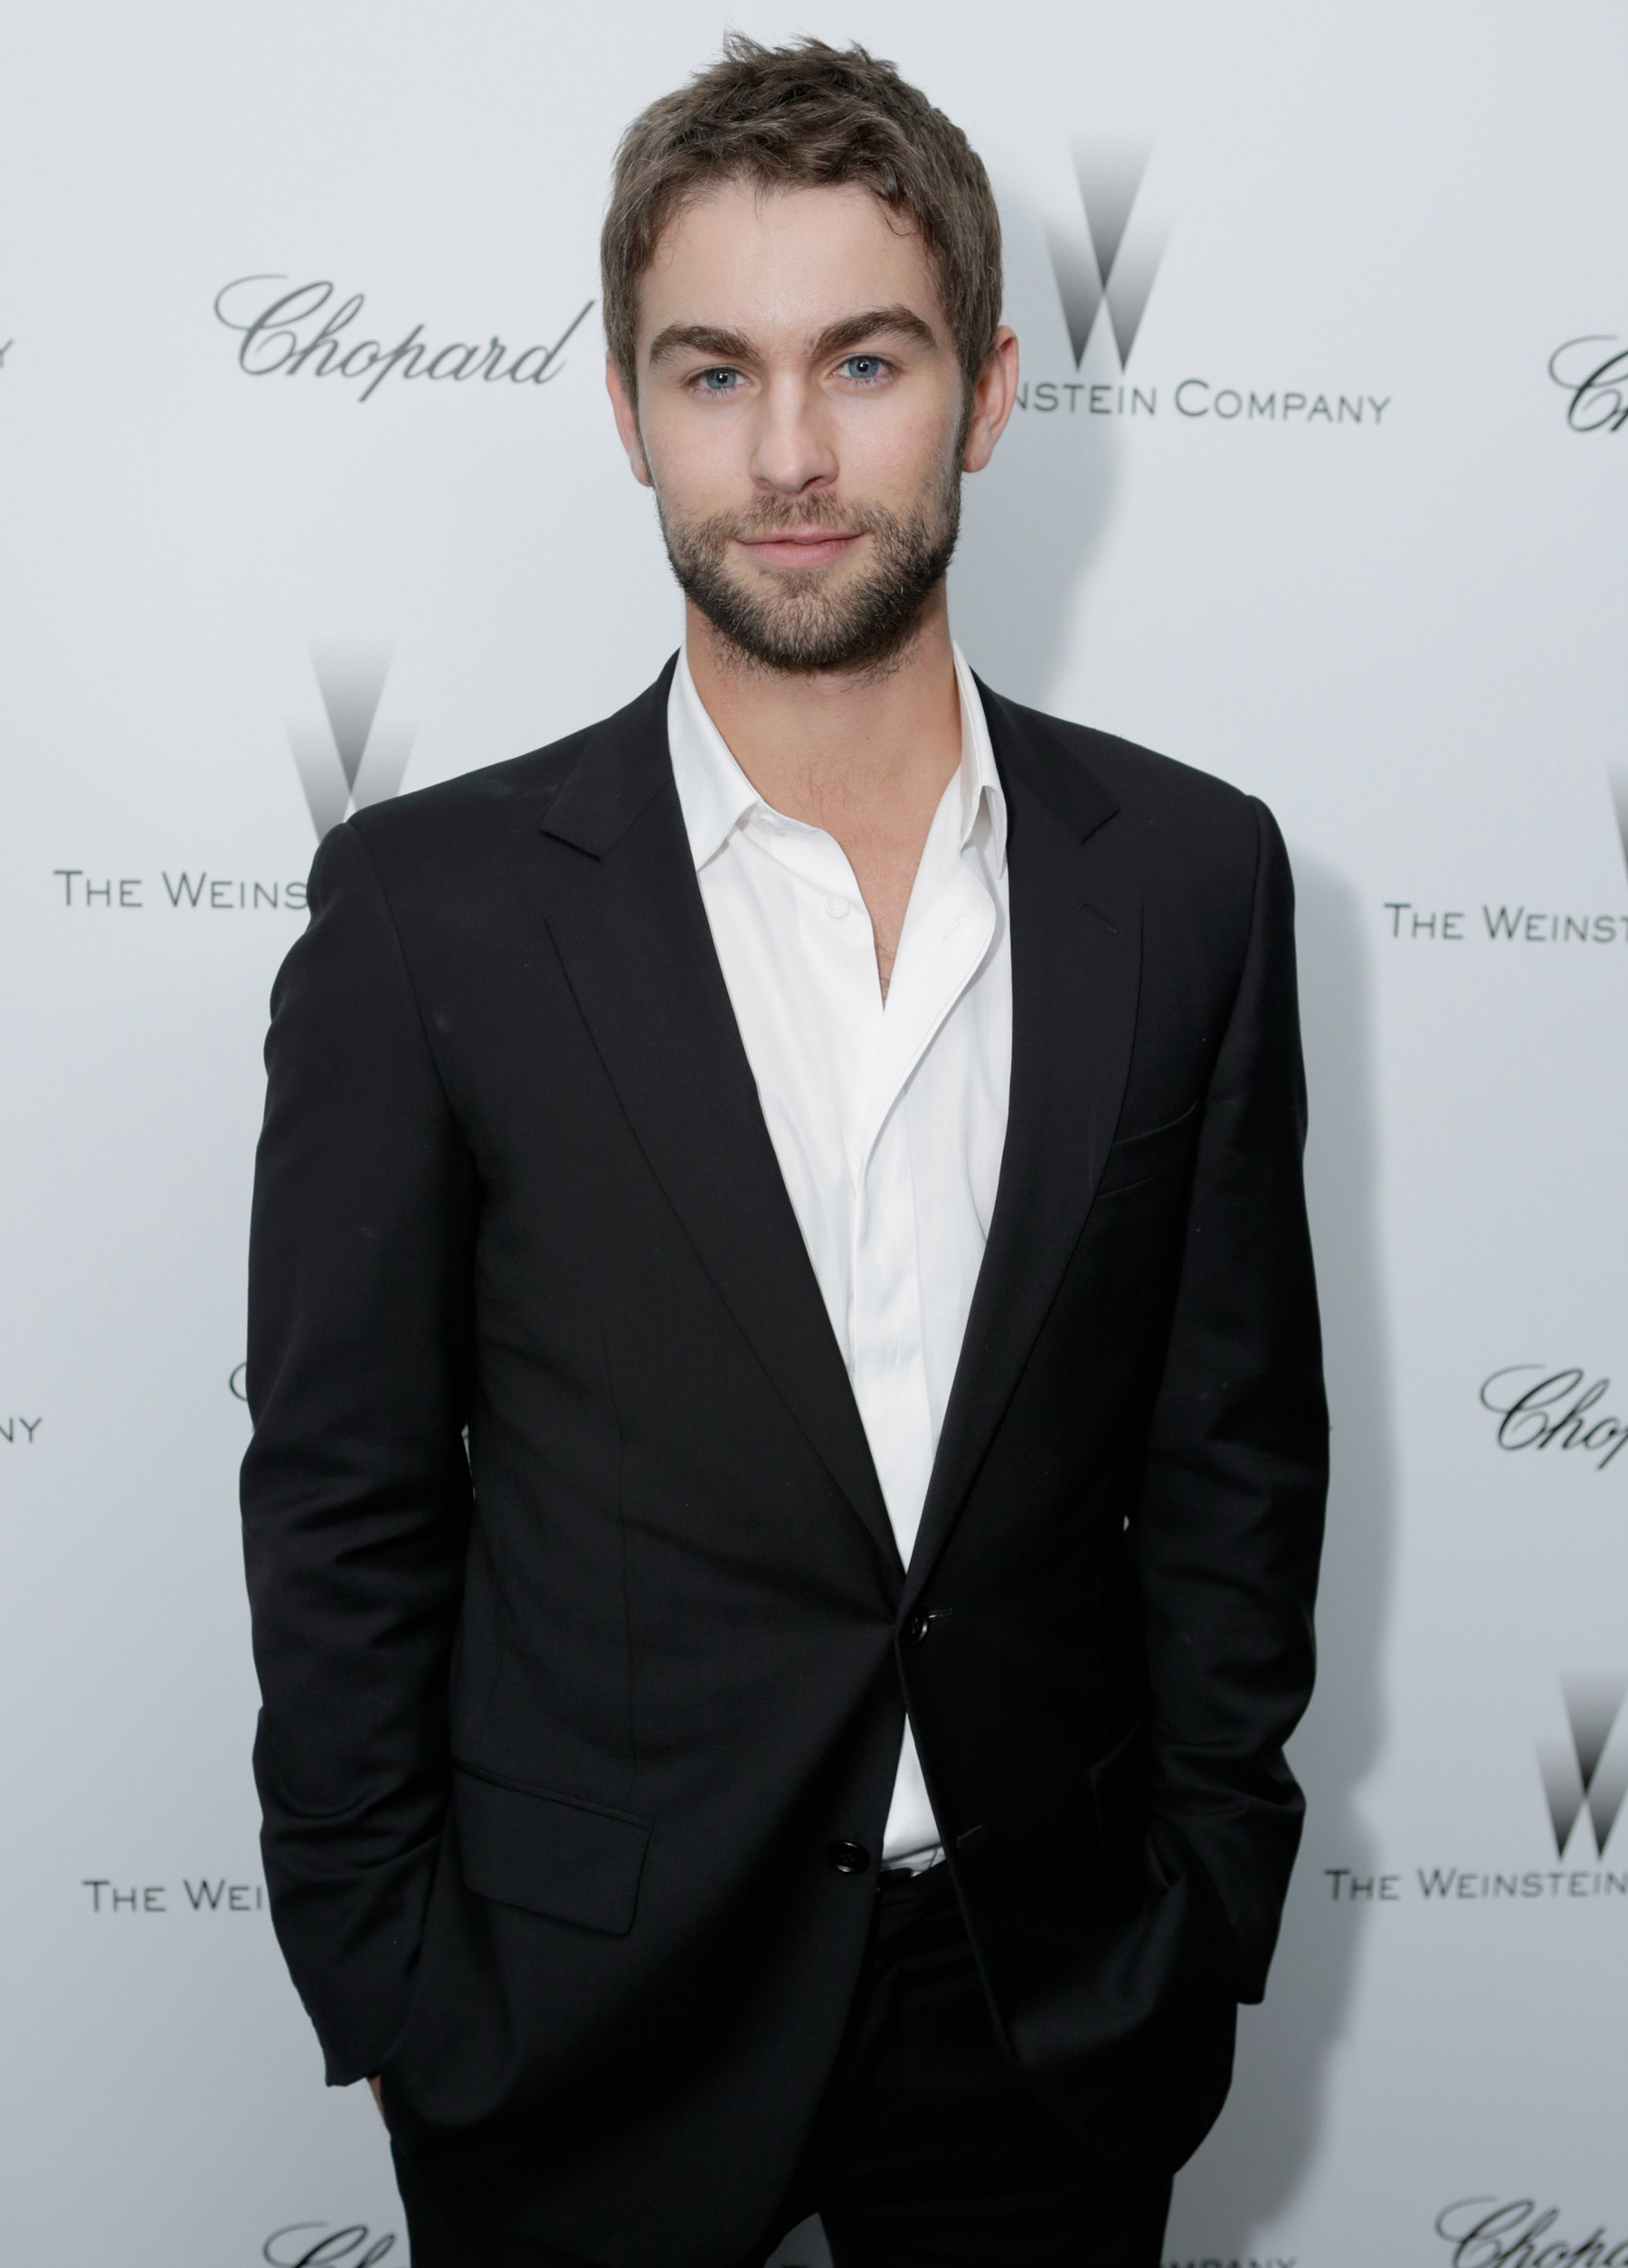 Gwyneth Paltrow, Chace Crawford to Guest on 100th Episode of 'Glee'